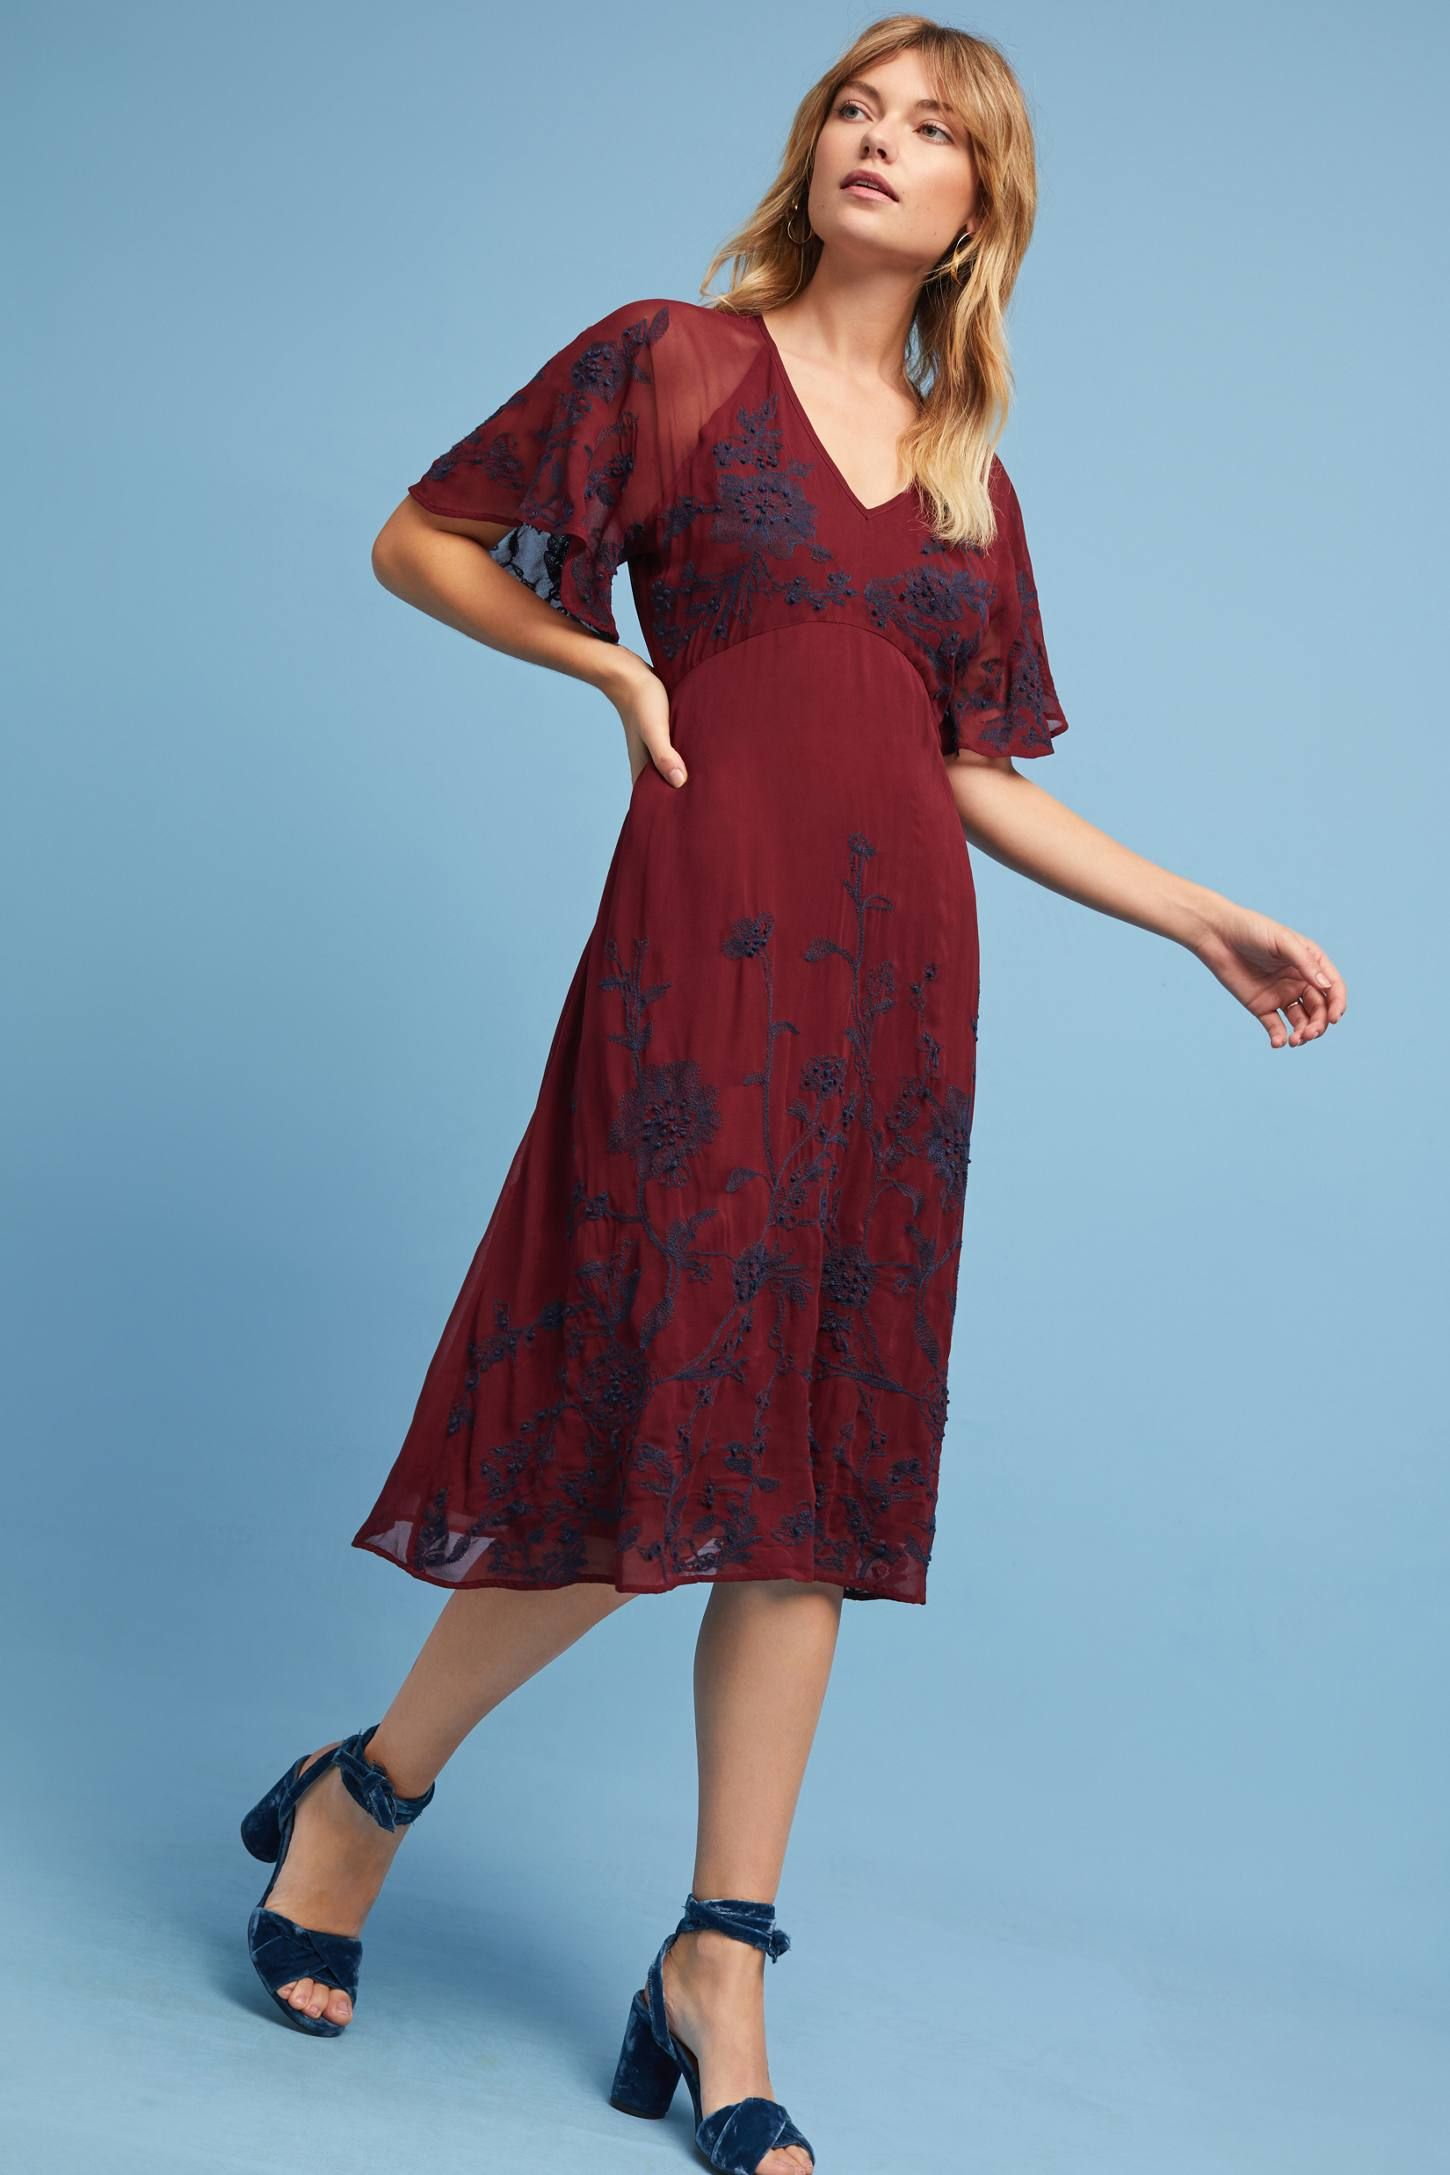 Francoise Embroidered Dress   Anthropologie, Shopping and Fancy